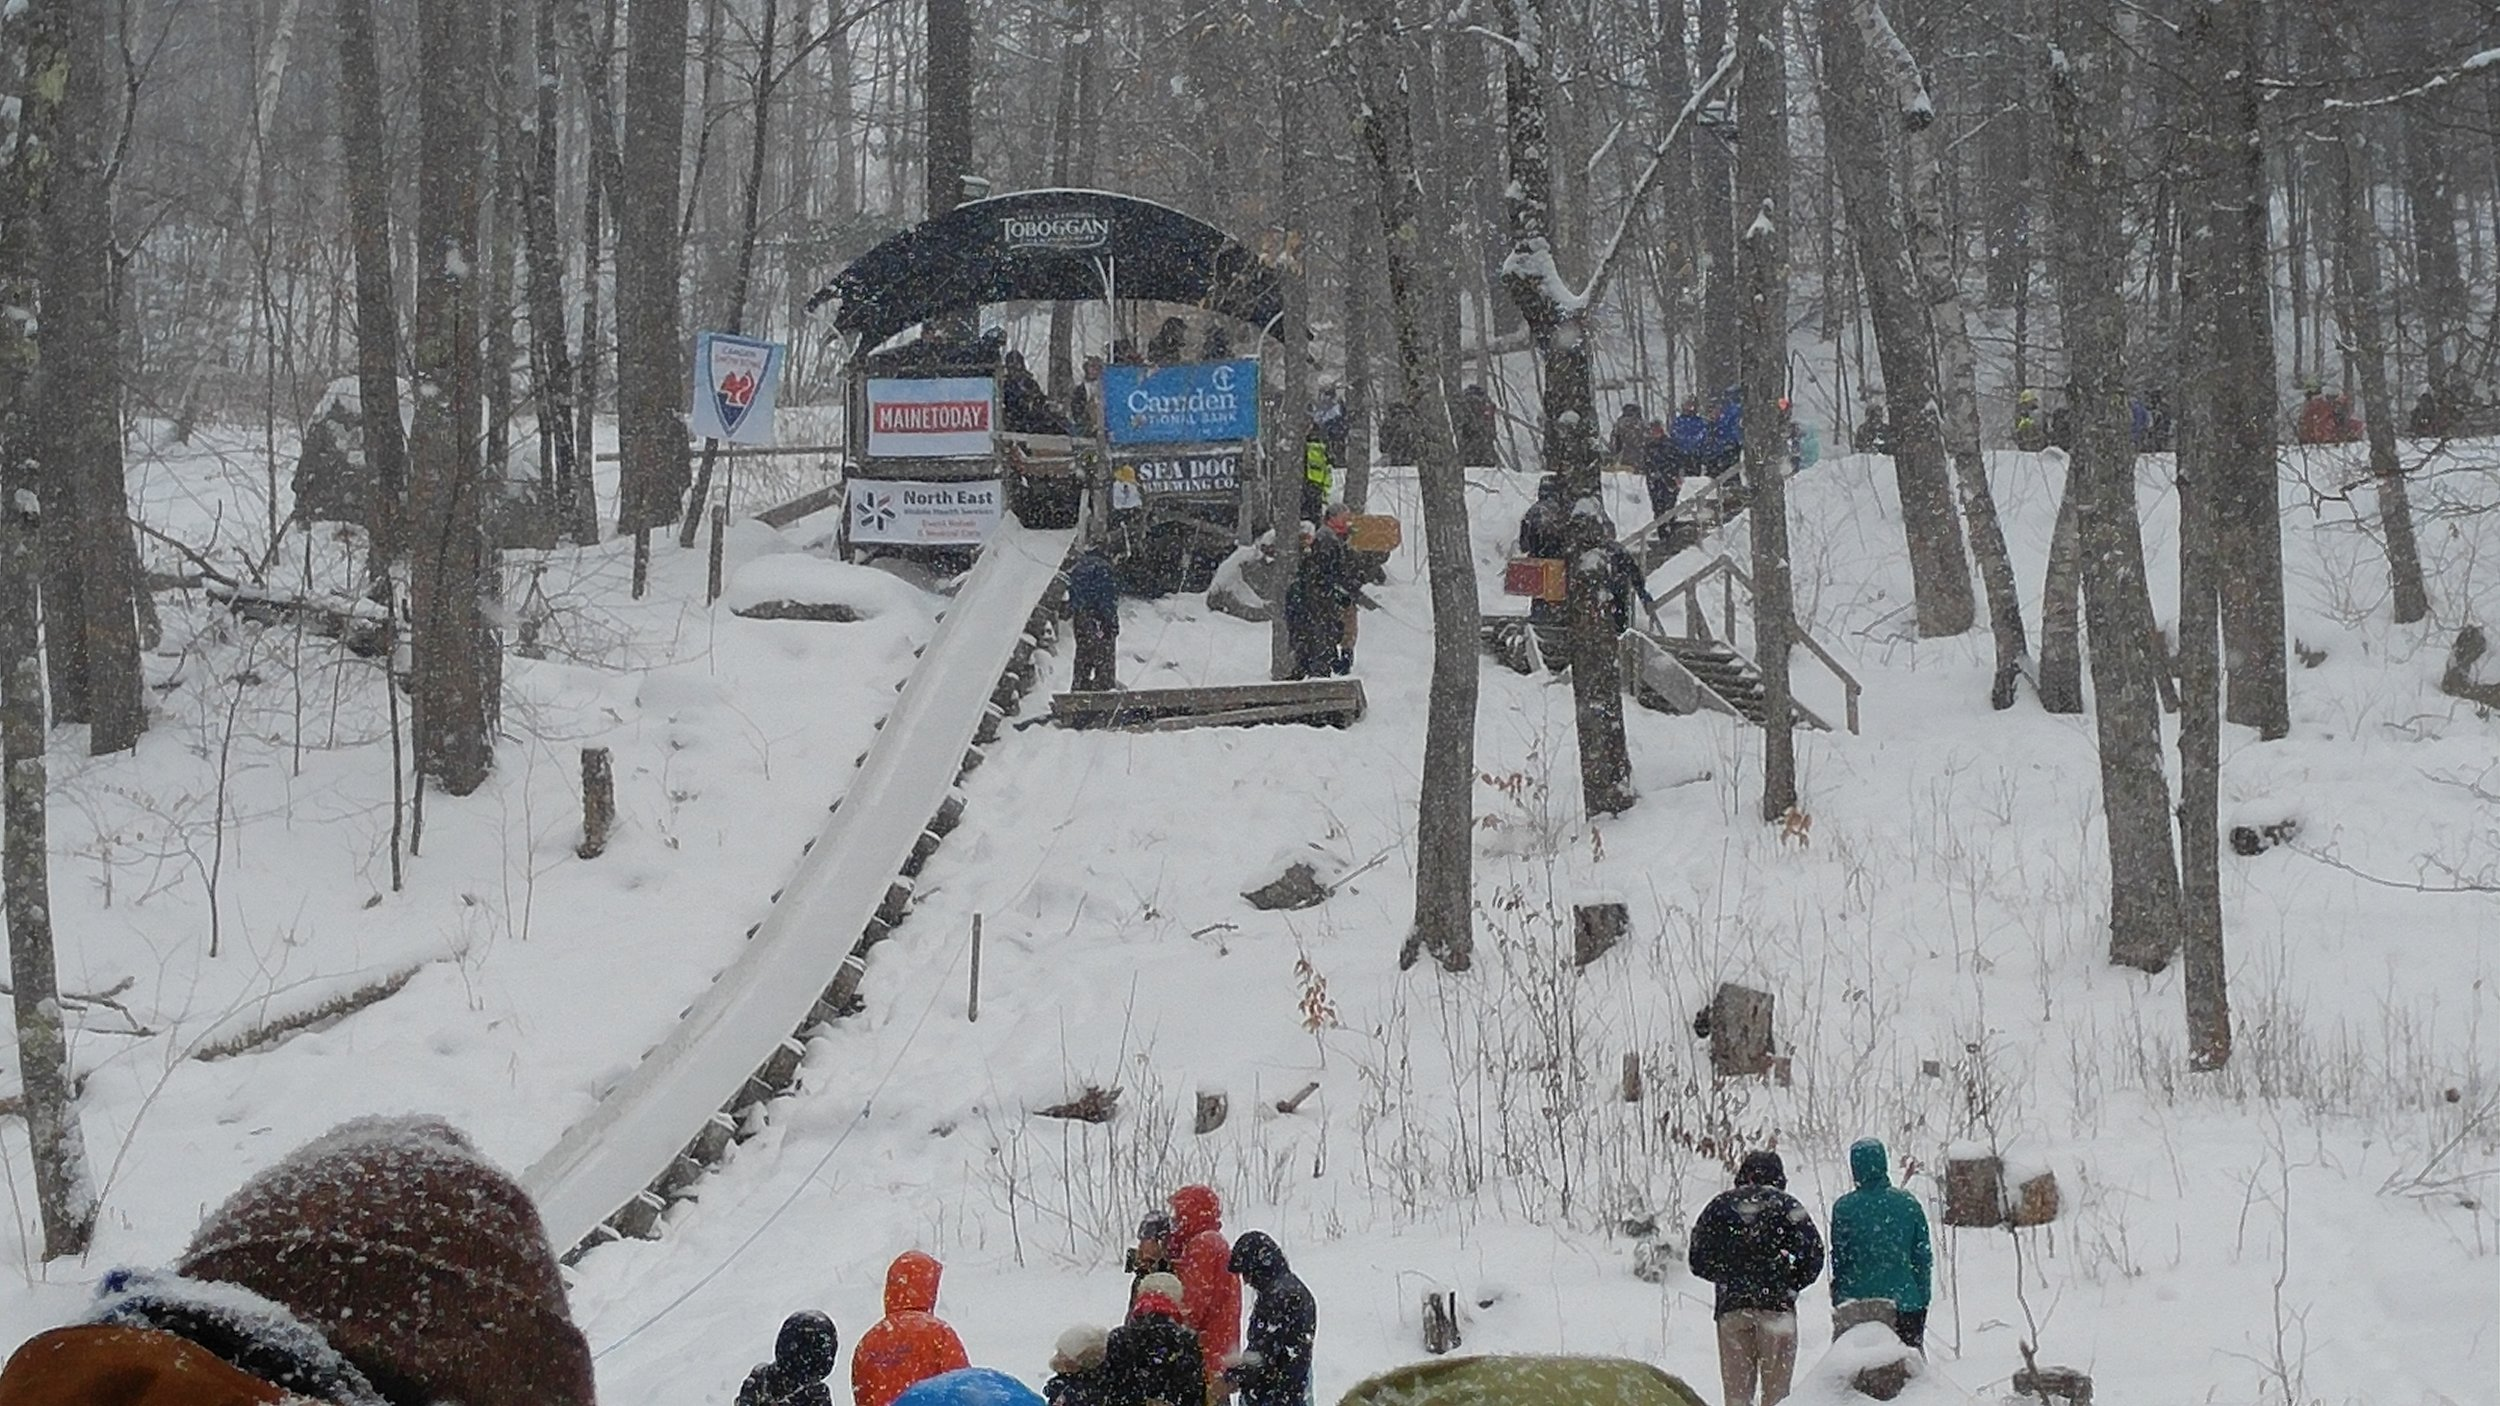 U.S. National Toboggan Championships at the Camden Snow Bowl